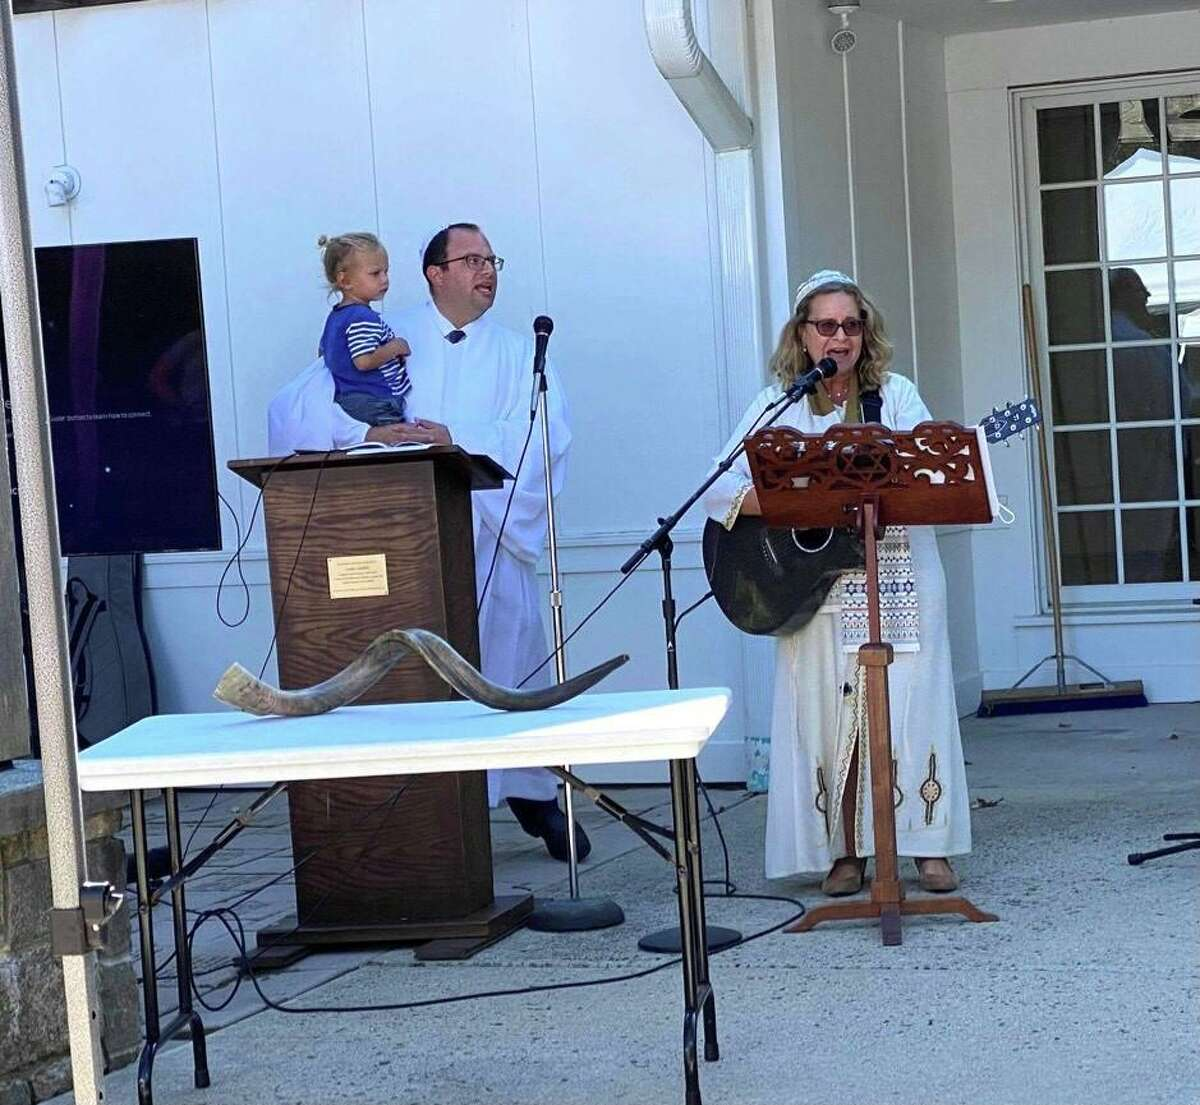 Rabbi David Reiner, left, and Cantor Deborah Katchko-Gray lead the Congregation Shir Shalom outdoor services for Rosh Hashana on Tuesday. On the table is the shofar, or ram's horn, which is blown on the holiday.